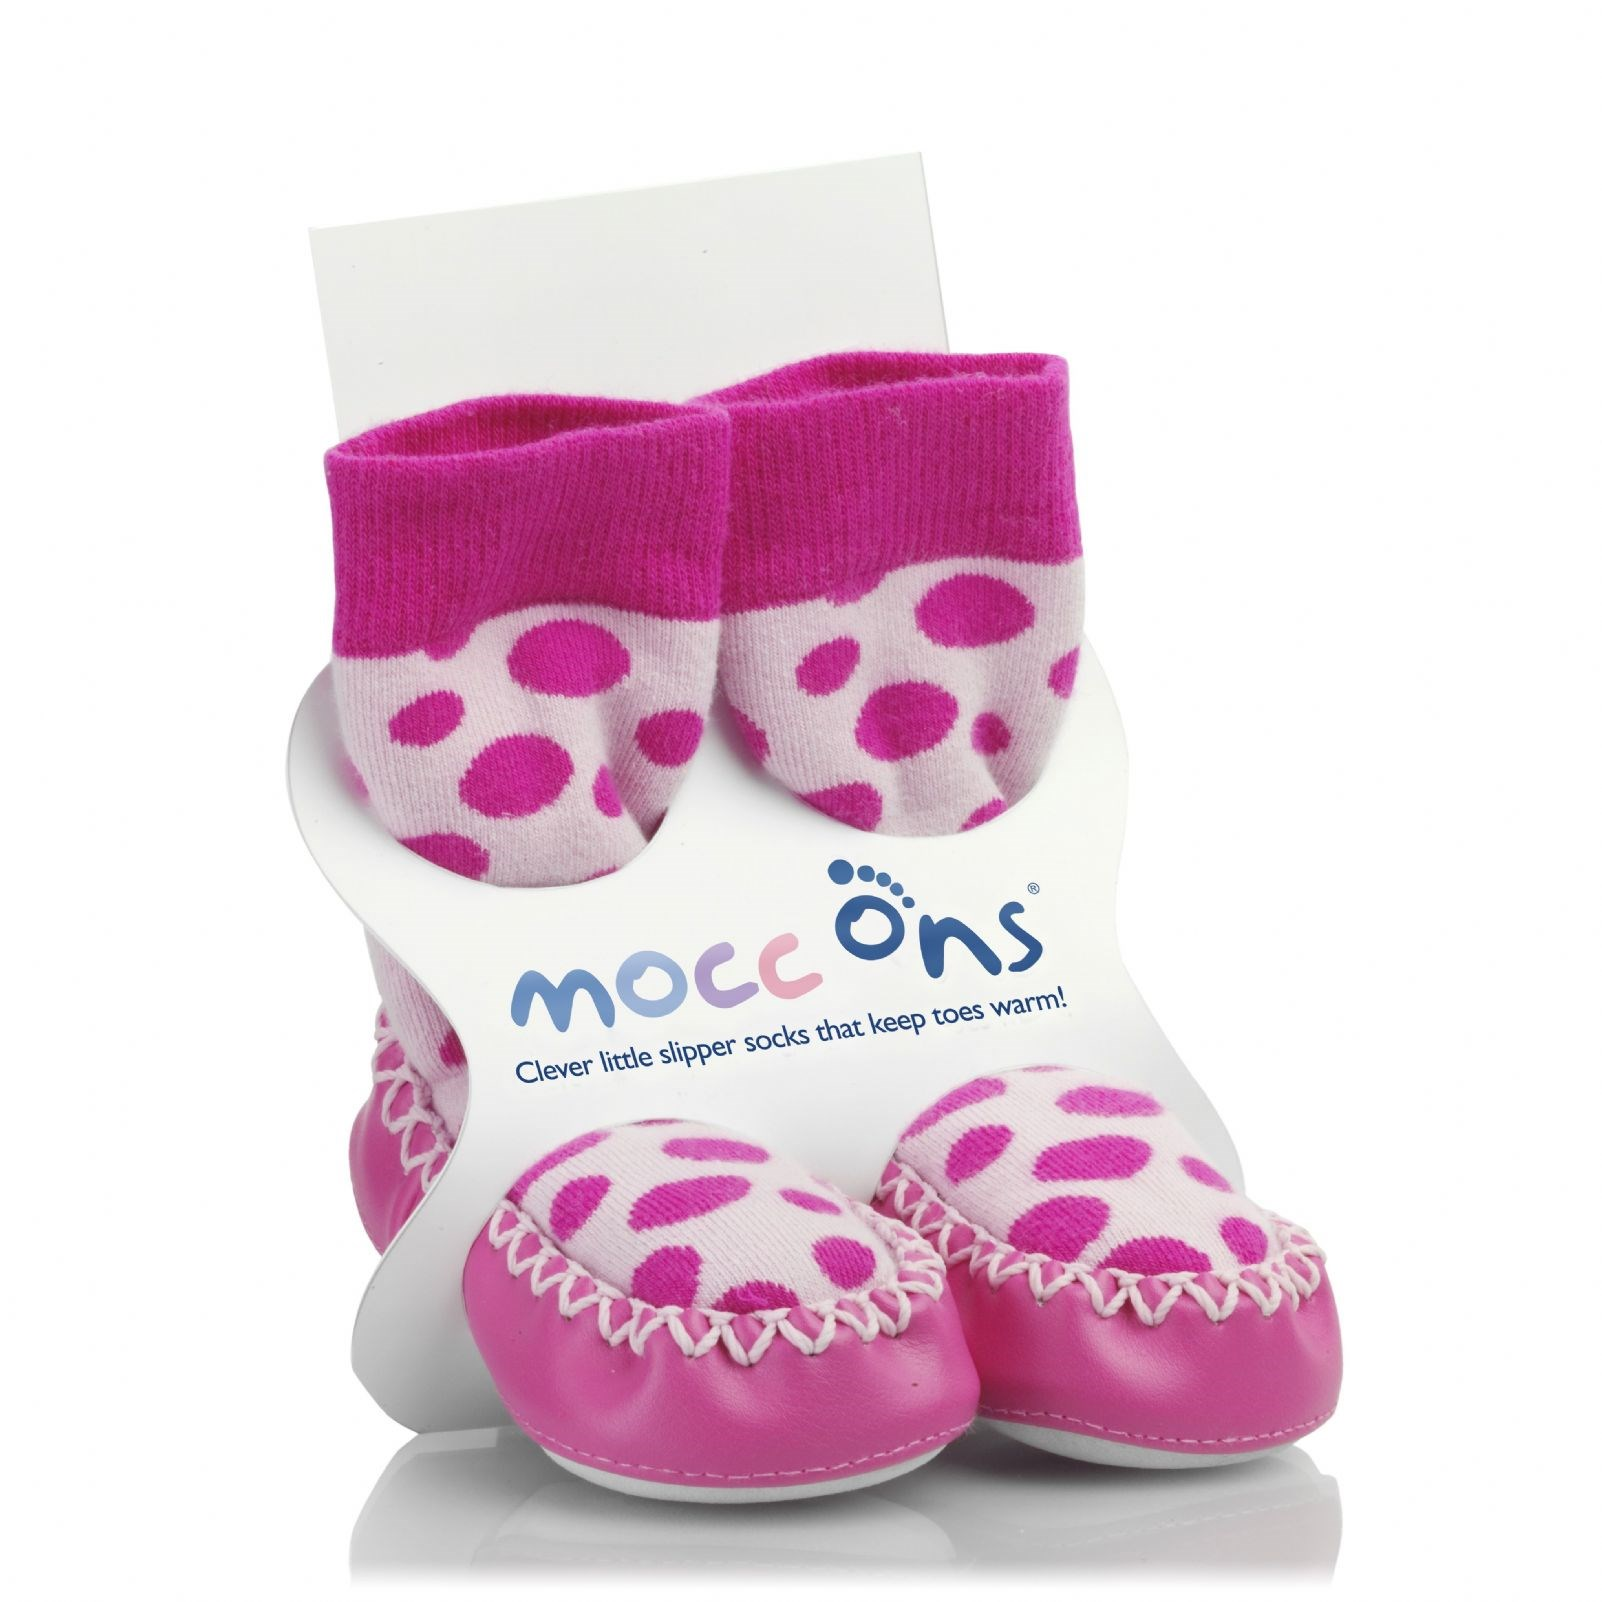 Mocc Ons - Pink Spots